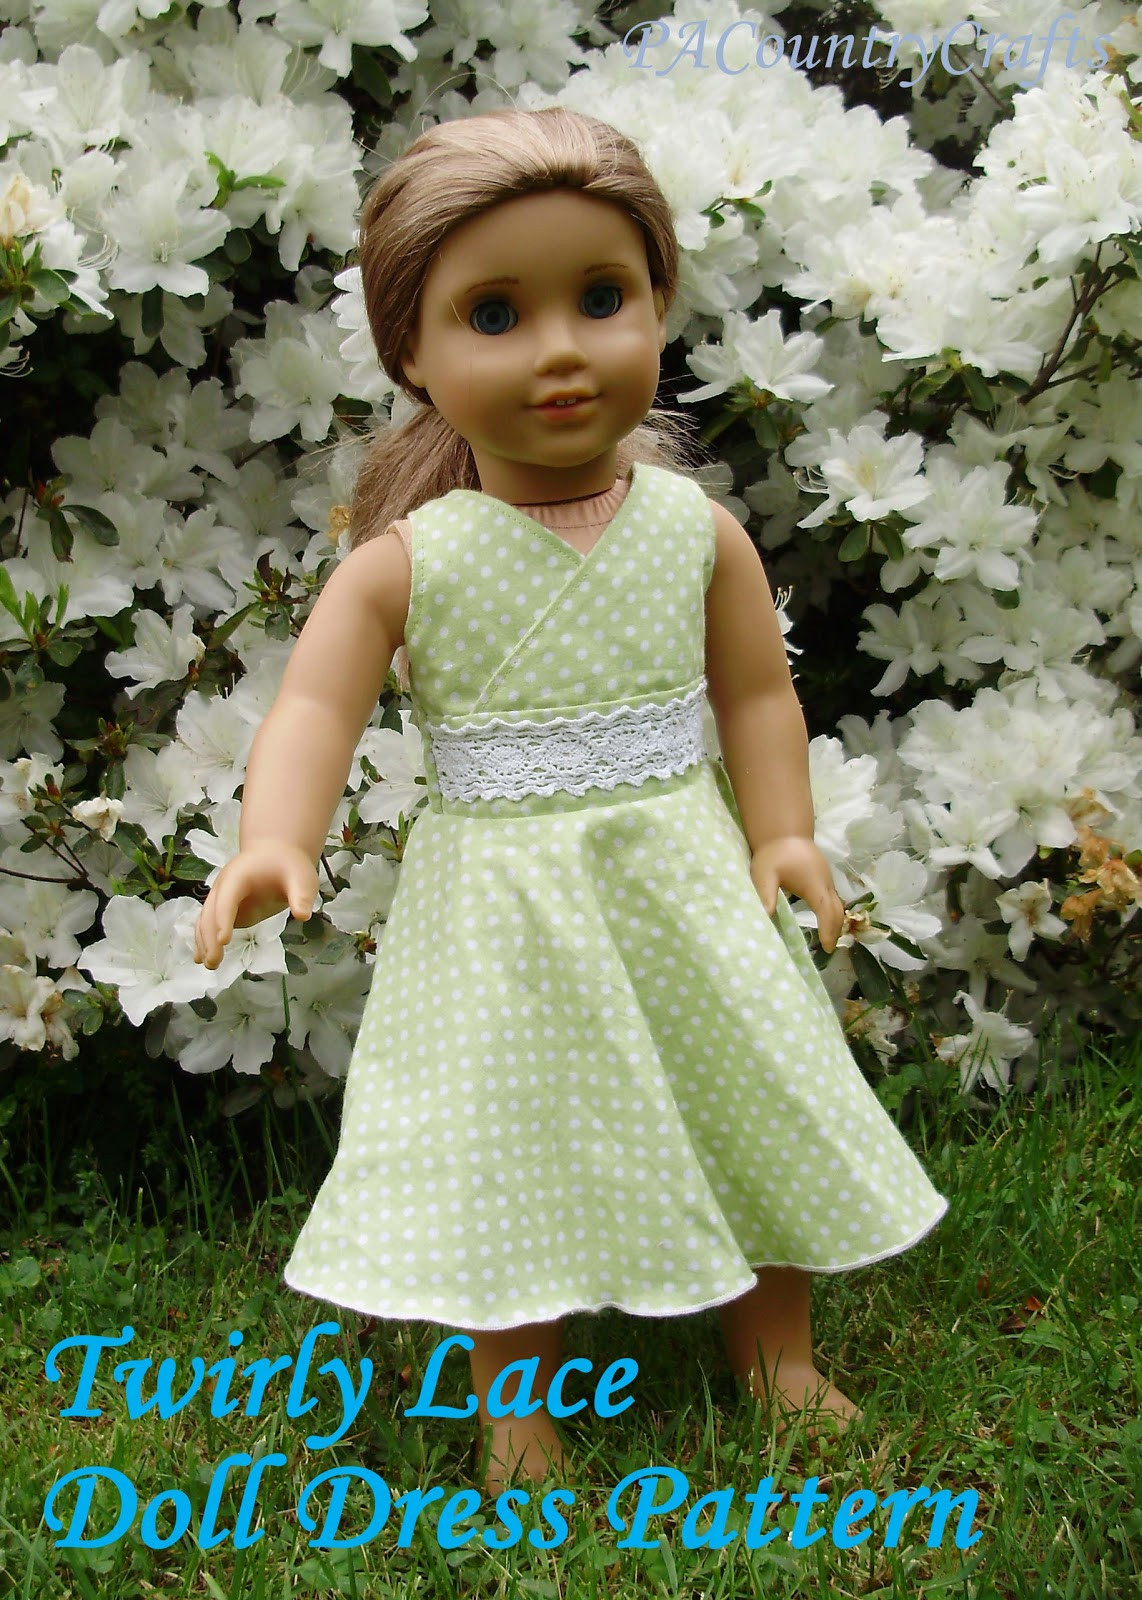 Doll Patterns Unique Twirly Lace Doll Dress Pattern Of Doll Patterns Unique Knitting Patterns Dolls Clothes